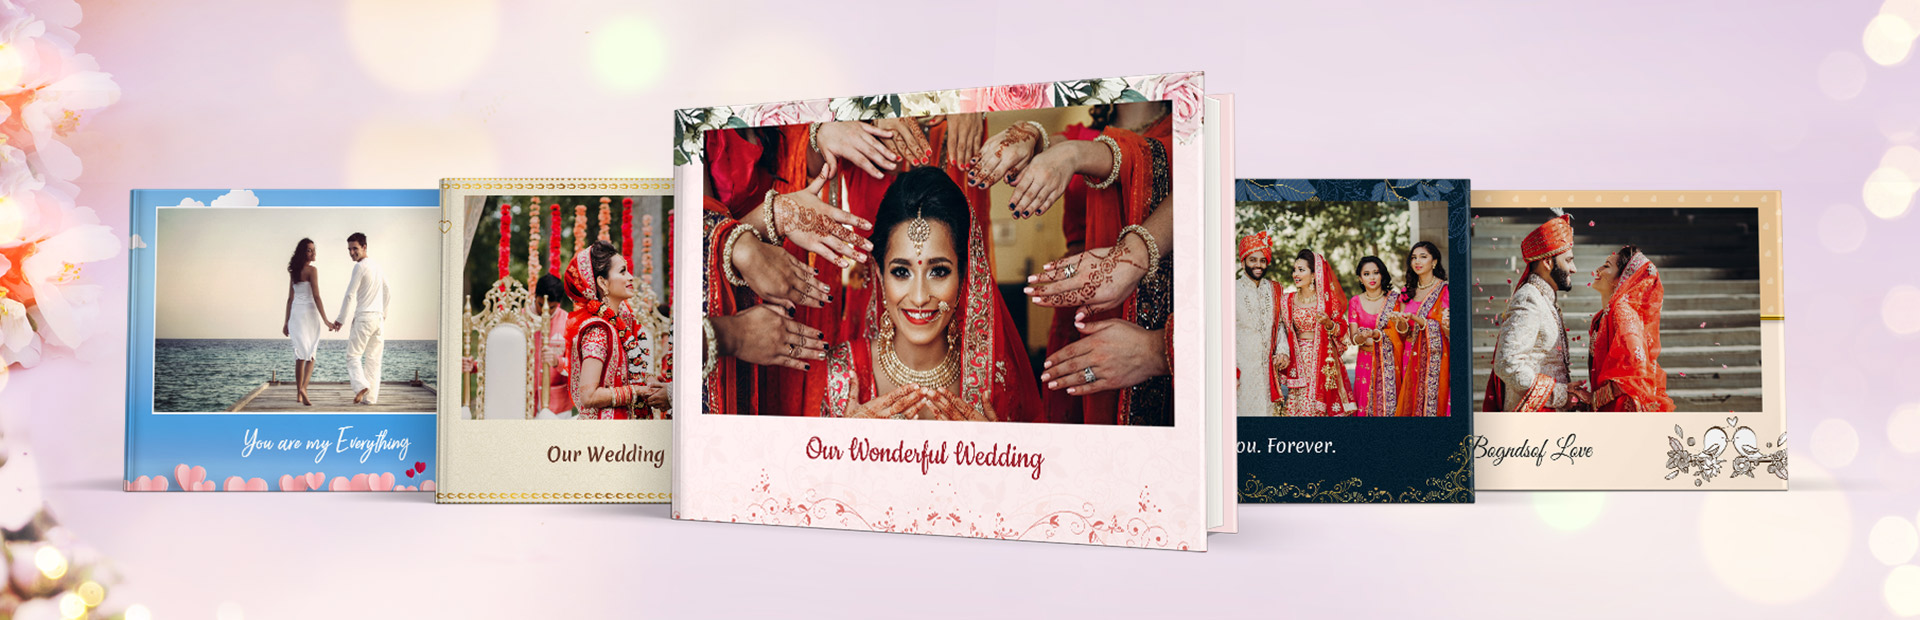 Wedding Special Photo Book Themes